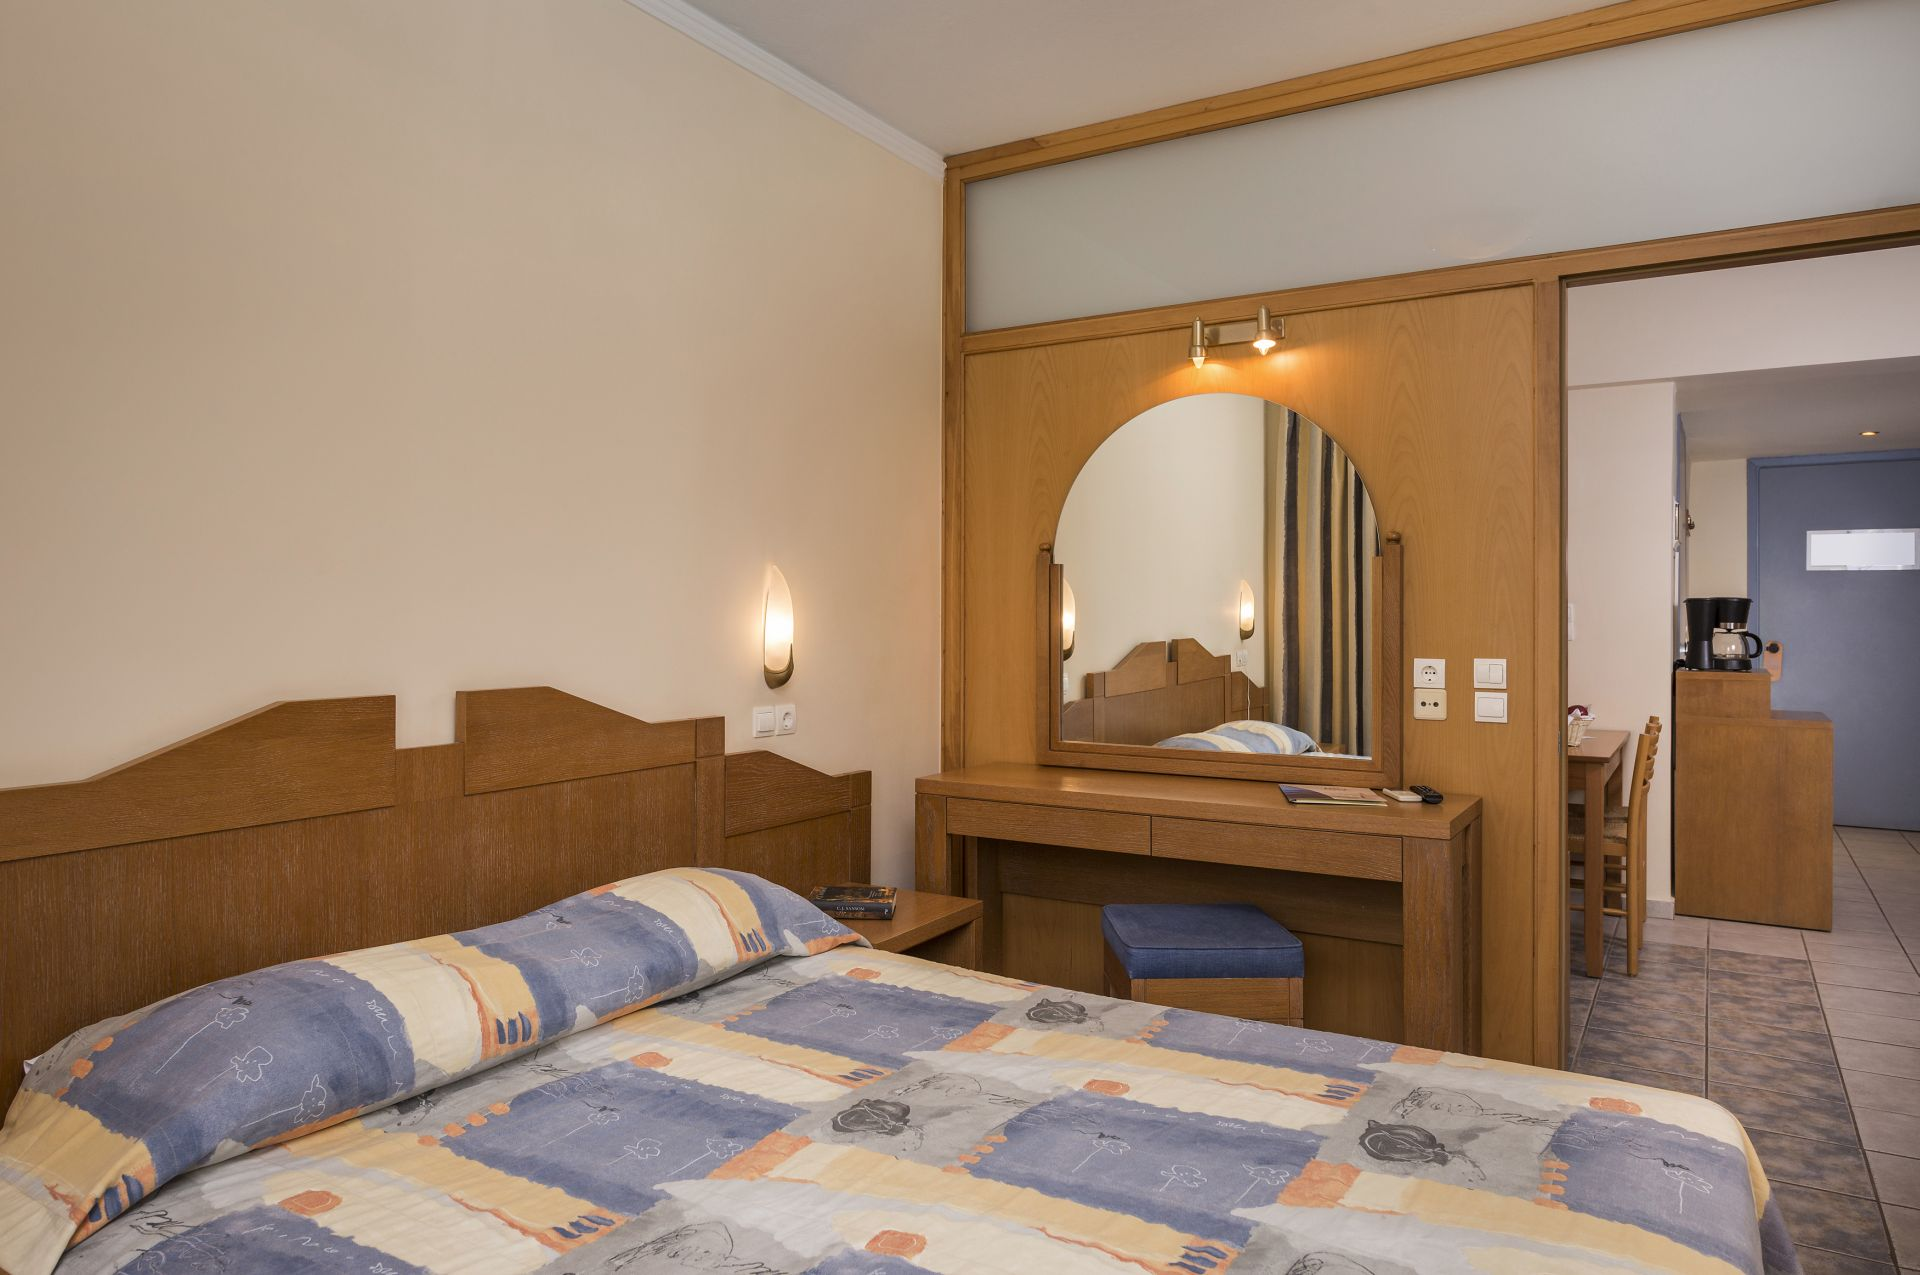 Two bedroom apartment bio suites hotel in rethymnon crete - Two bedrooms apartment ...